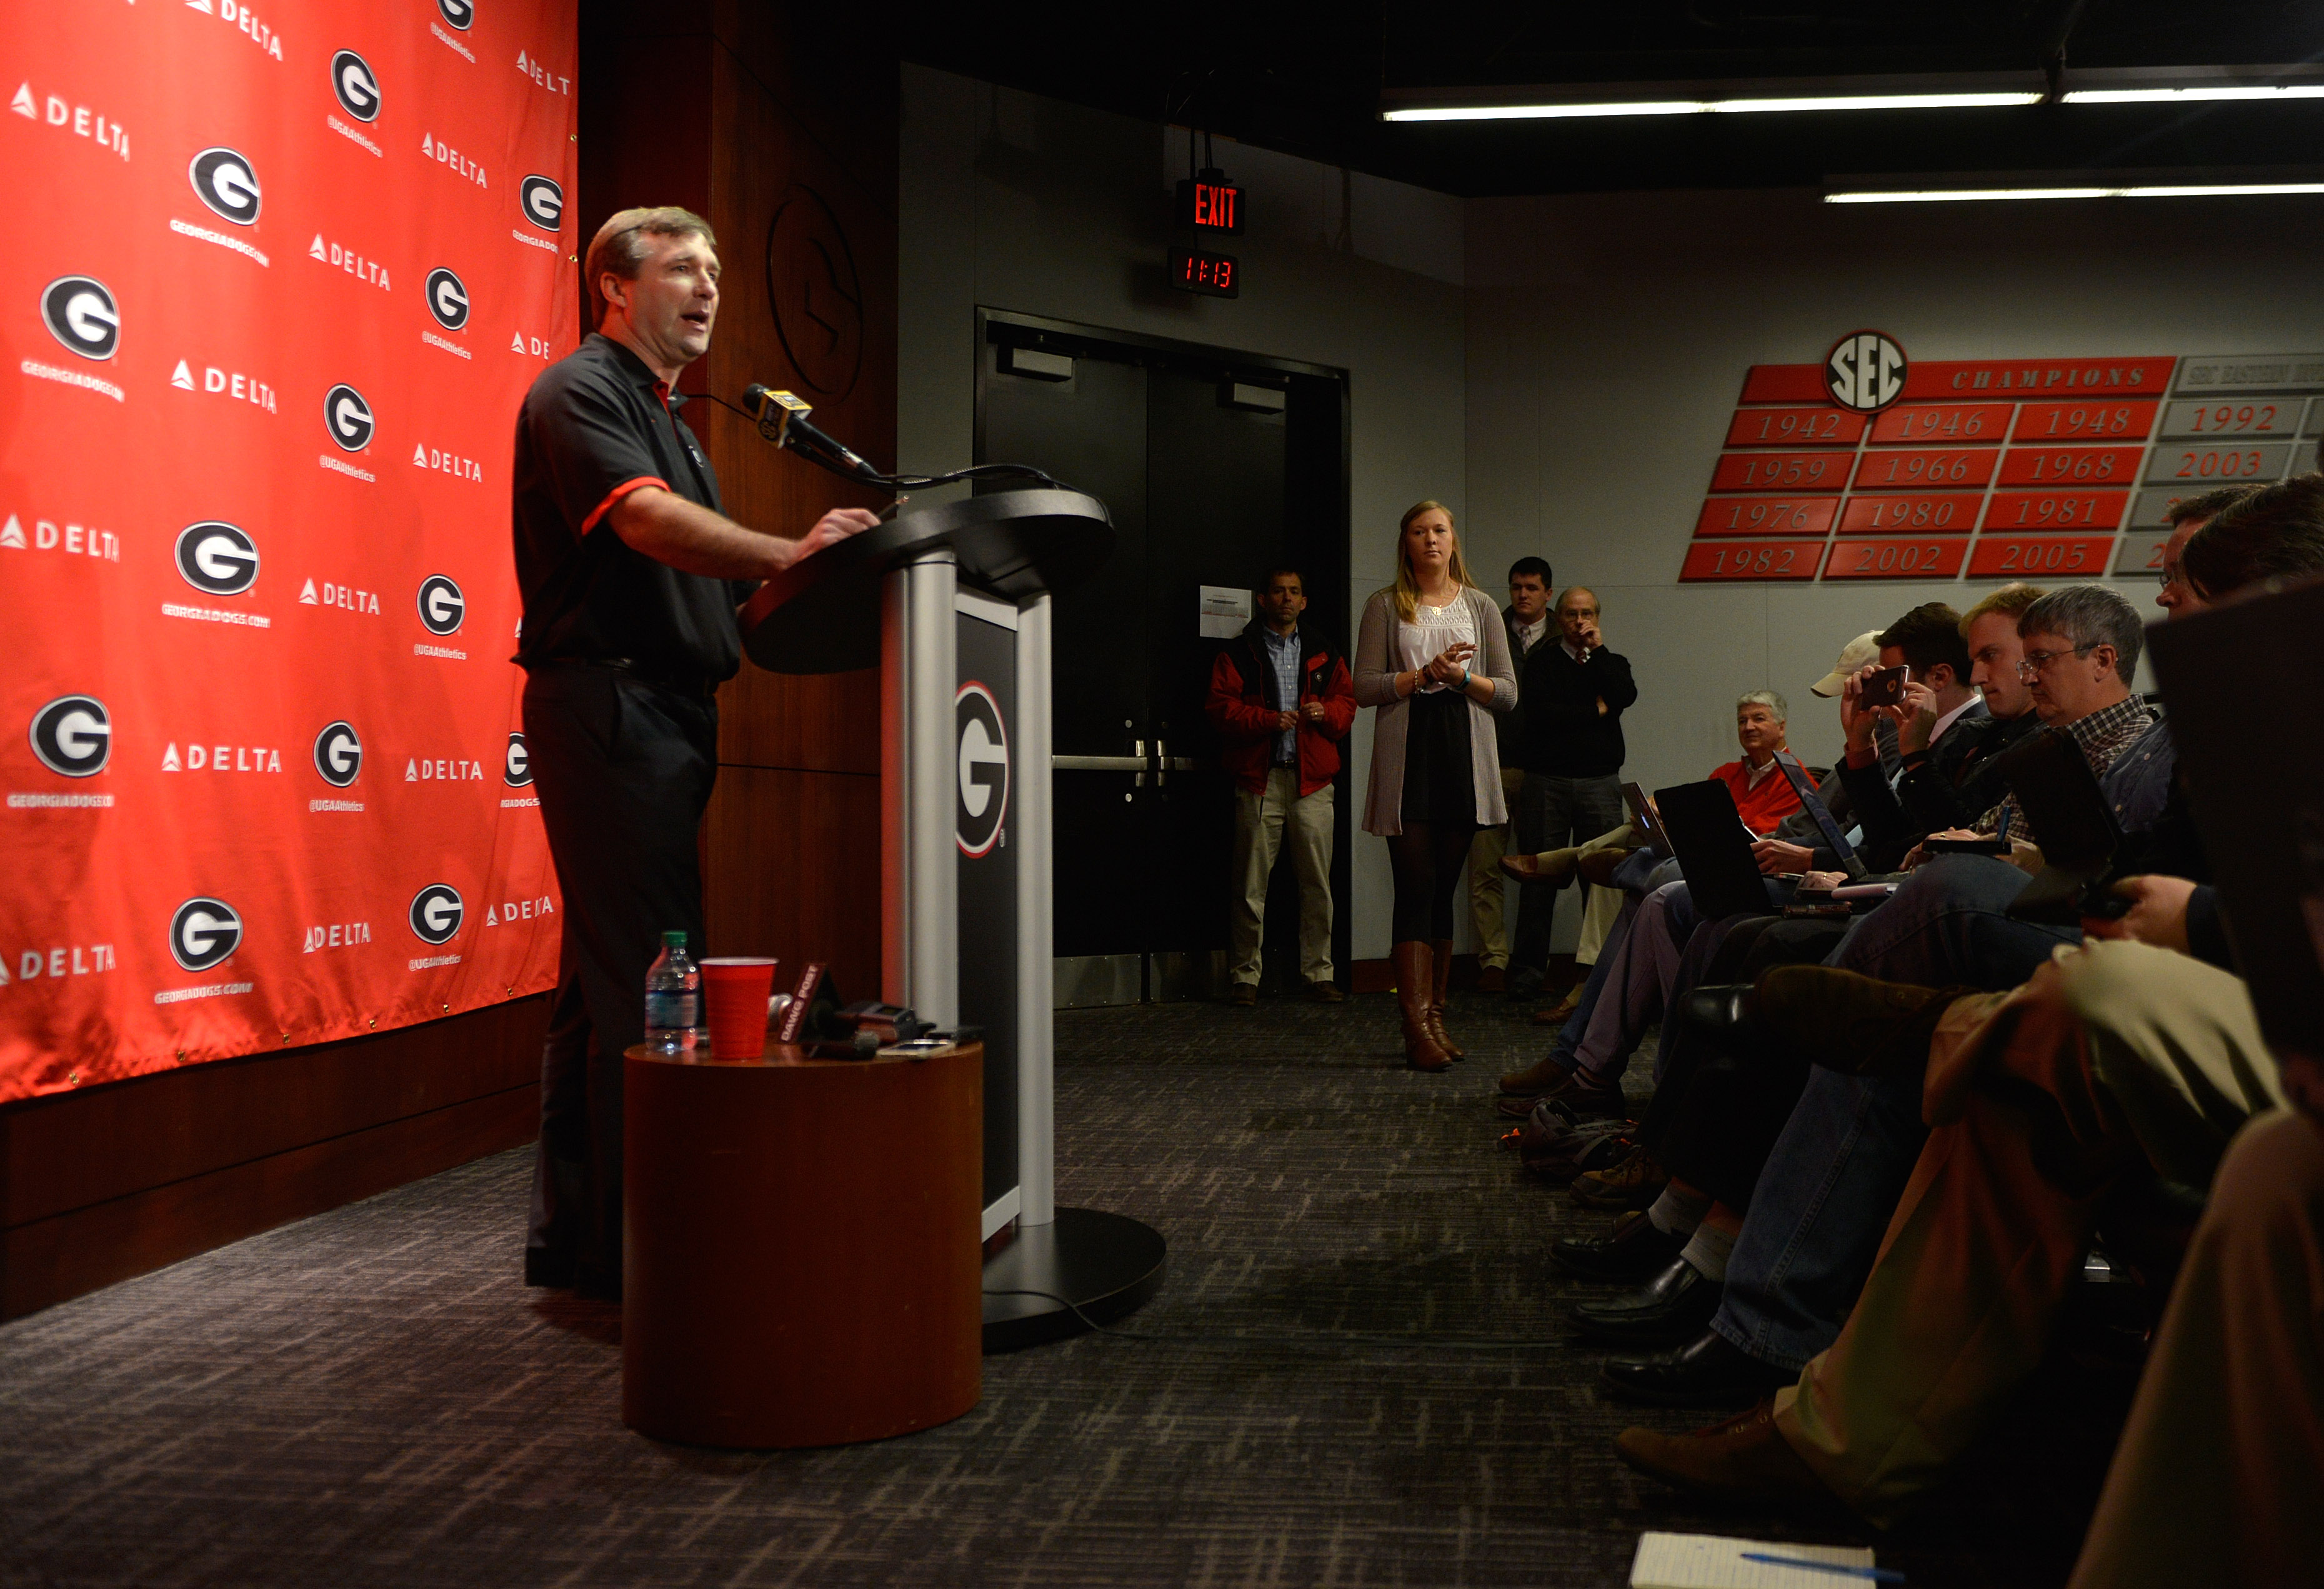 University of Georgia NCAA college football head coach Kirby Smart speaks during a press conference in Athens, Ga., Wednesday, Jan. 13, 2016.   (Richard Hamm/Athens Banner-Herald via AP) MAGS OUT; MANDATORY CREDIT